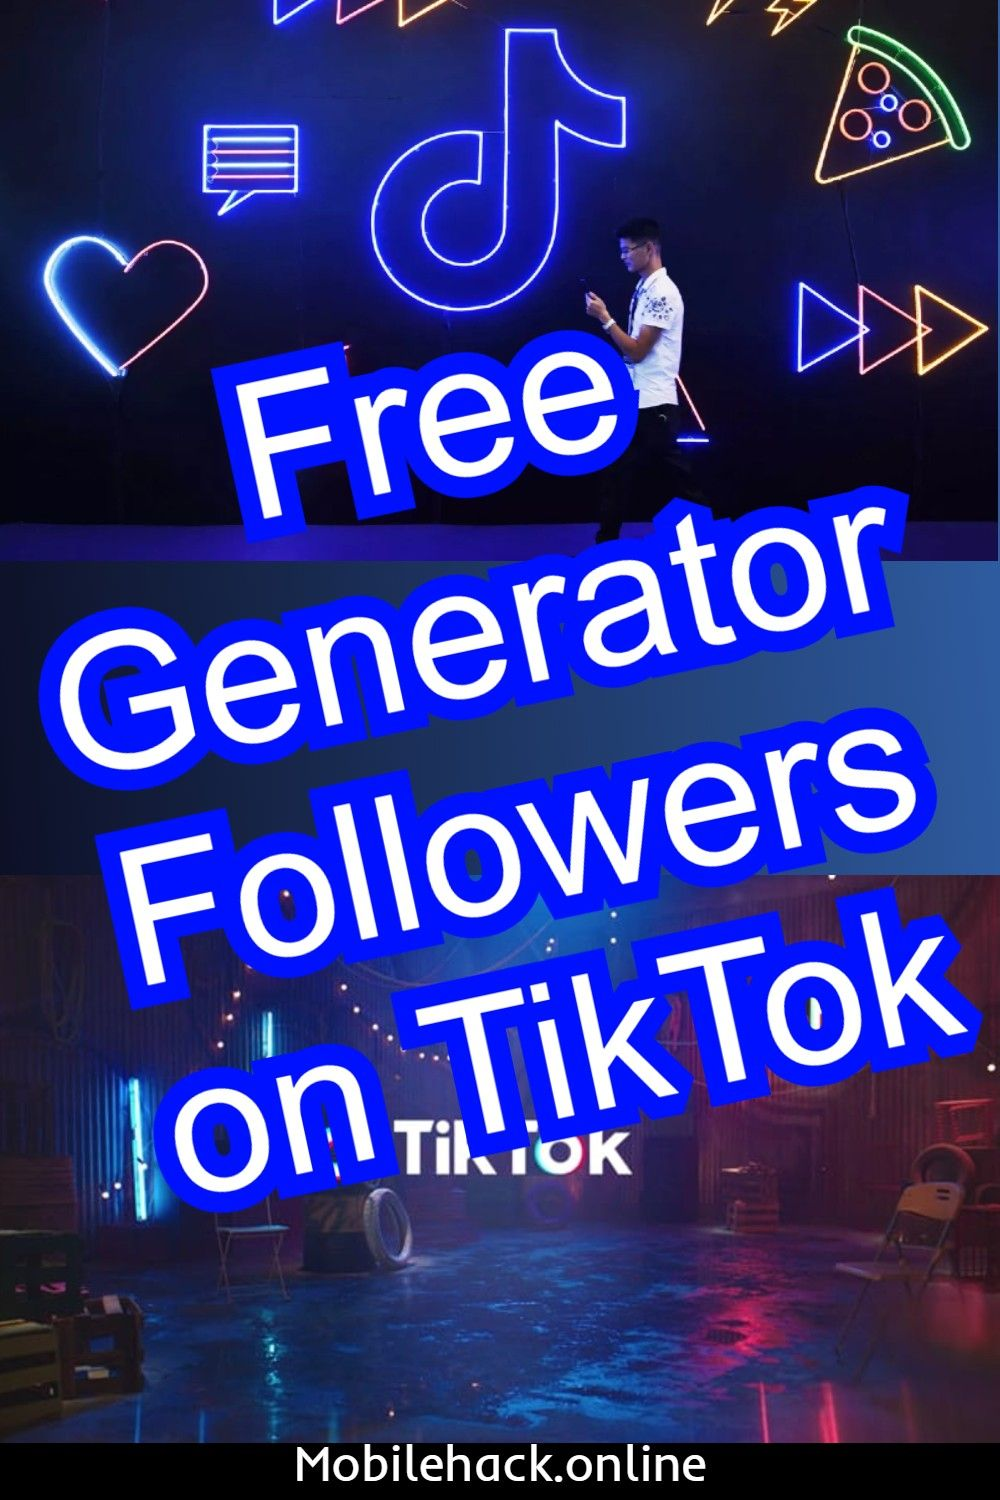 New method how to get free followers on TikTok in 2020